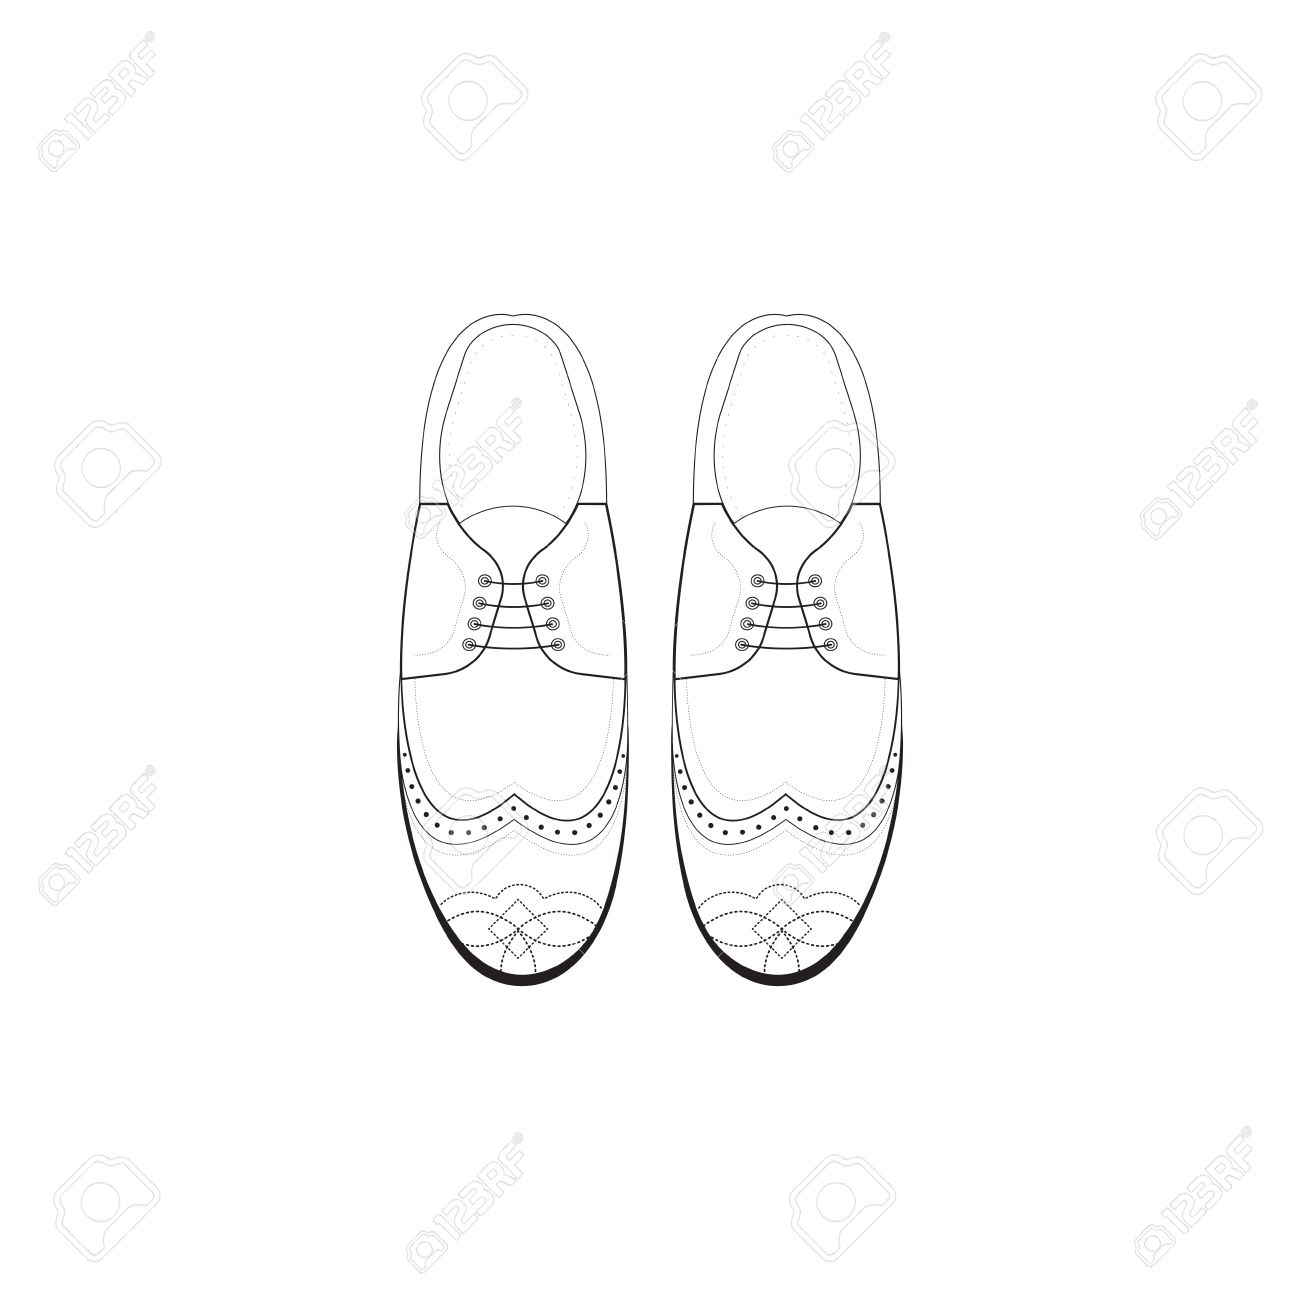 1300x1300 Hand Drawing Illustration With Men Fashion Shoes. Classic Brogue